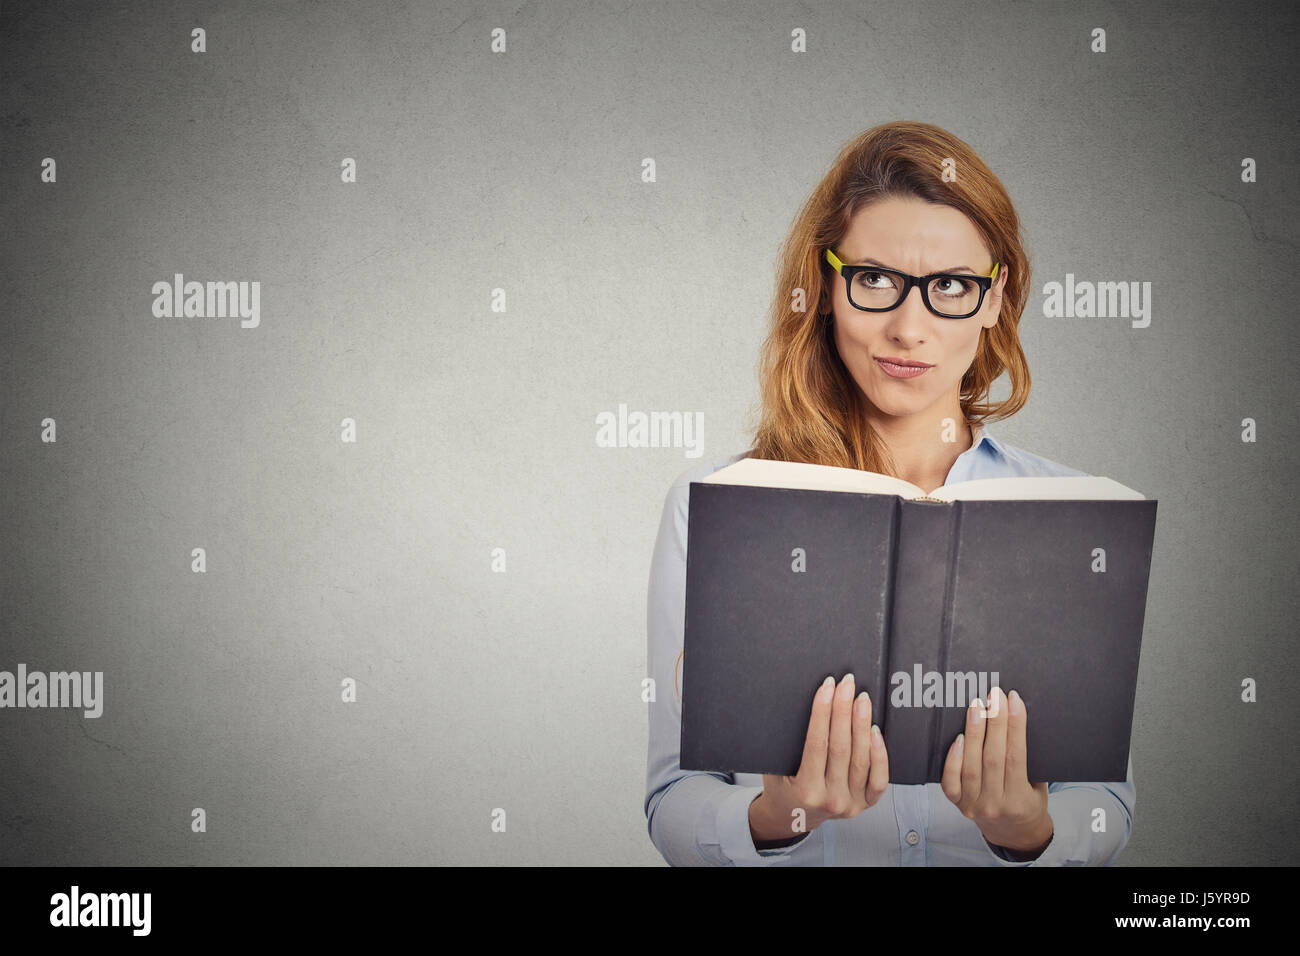 Closeup clever woman reading book having thought isolated on grey wall background. Human face expression - Stock Image